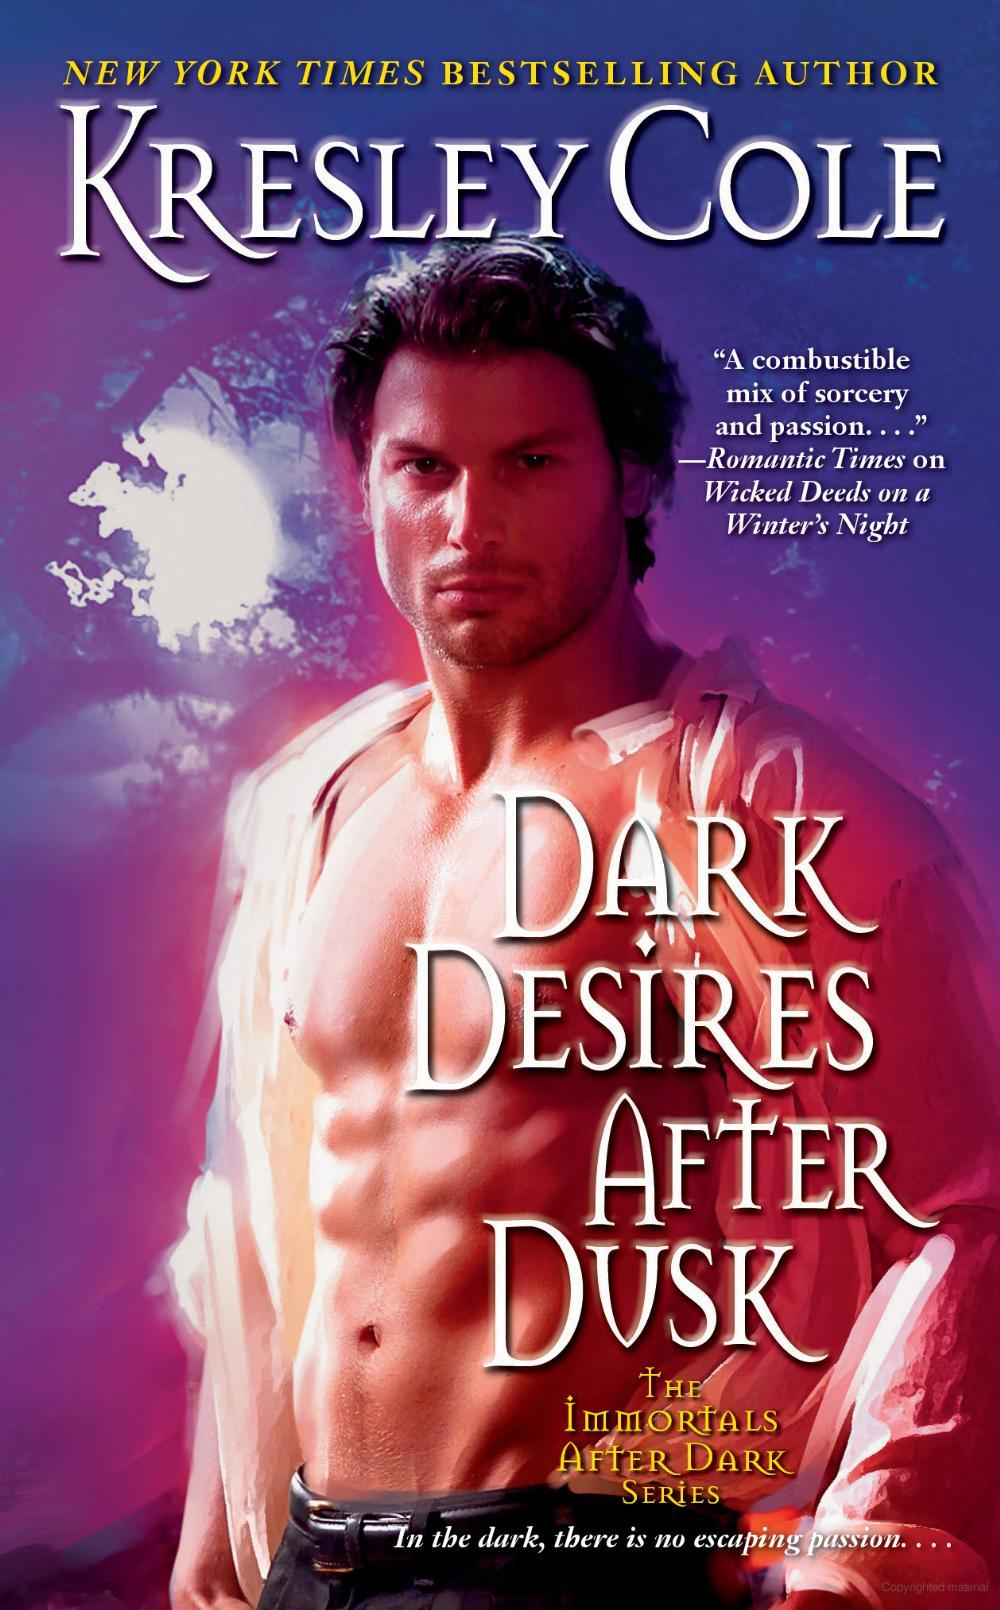 Dark Desires After Dusk Original.jpg